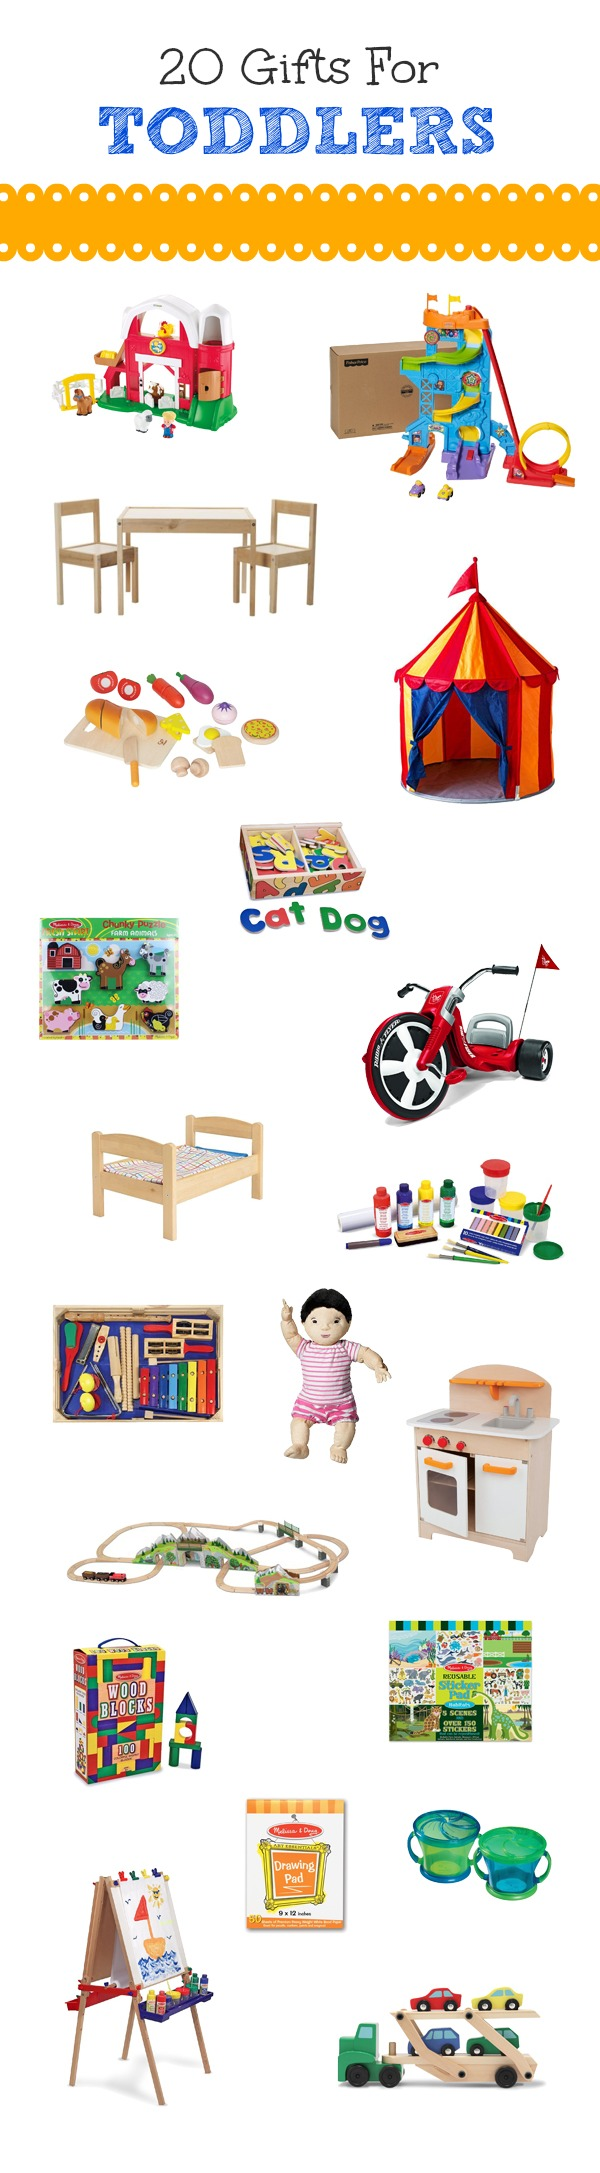 20 Gifts for Toddlers